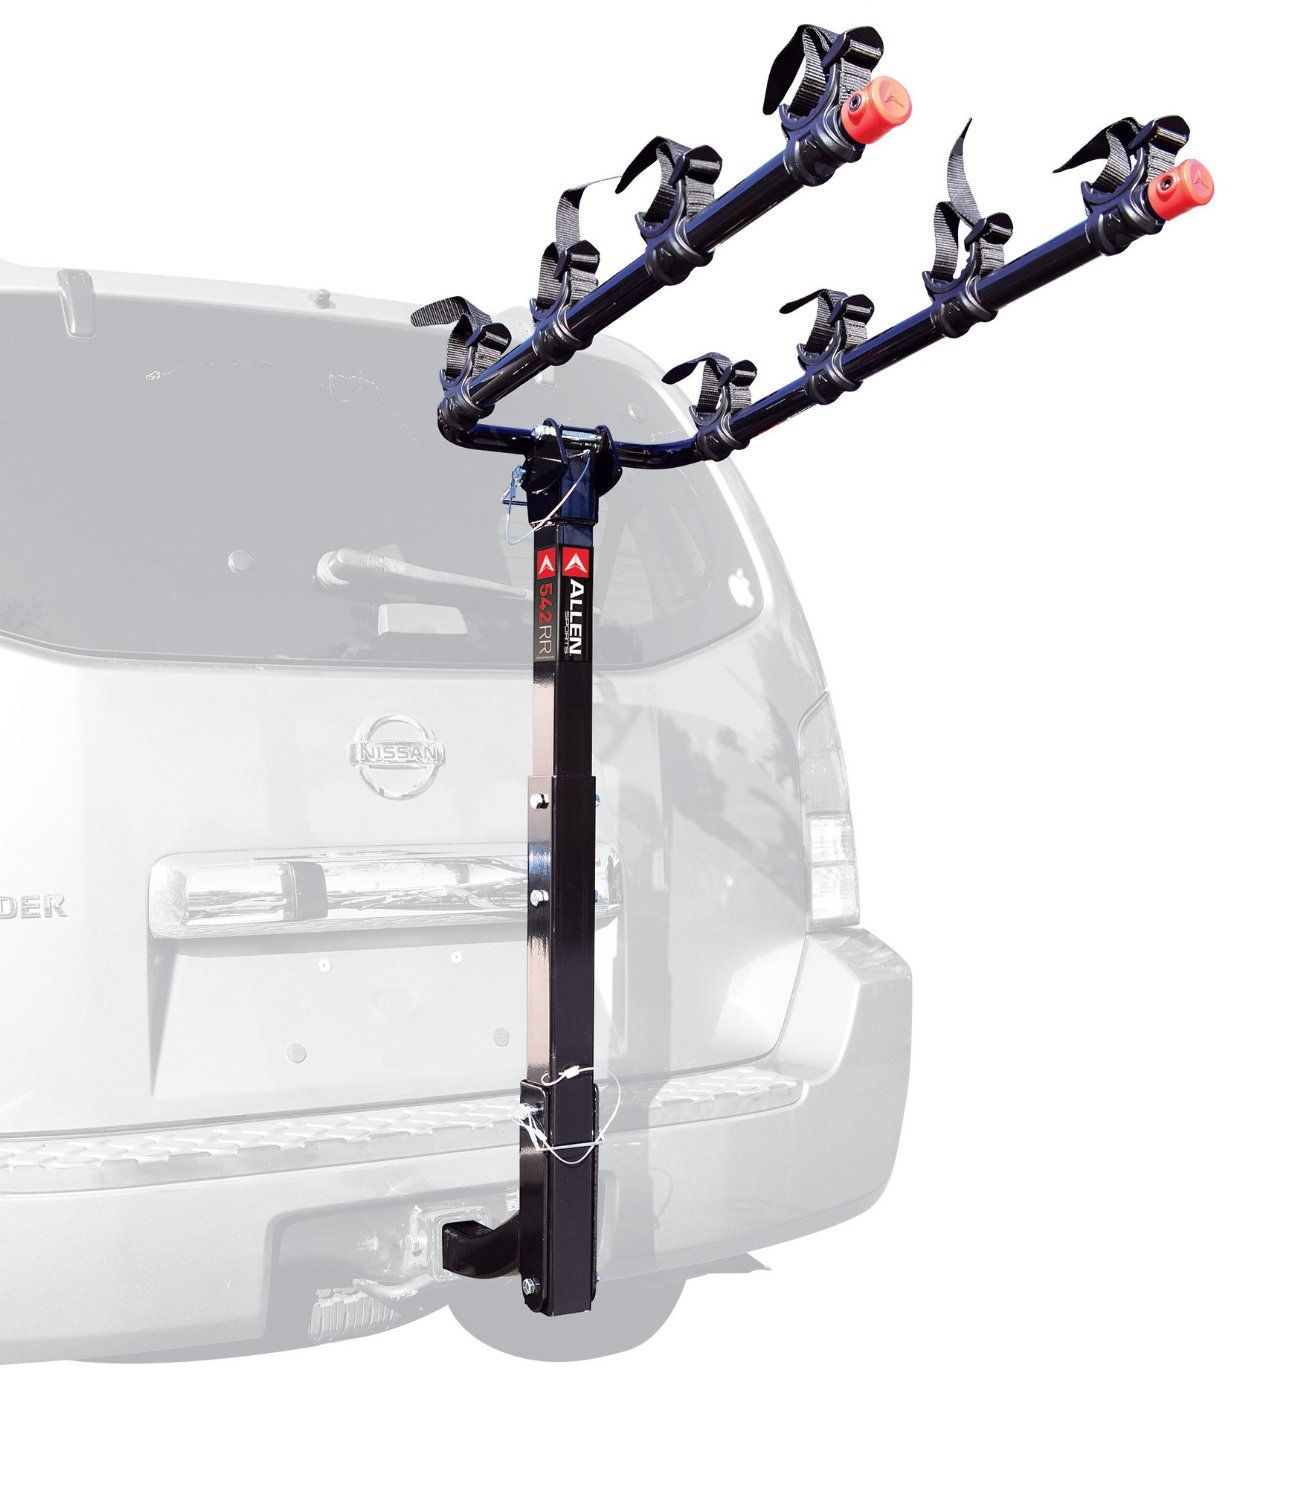 Awesome Top 10 Best Hitch Bike Racks in 2016 Reviews